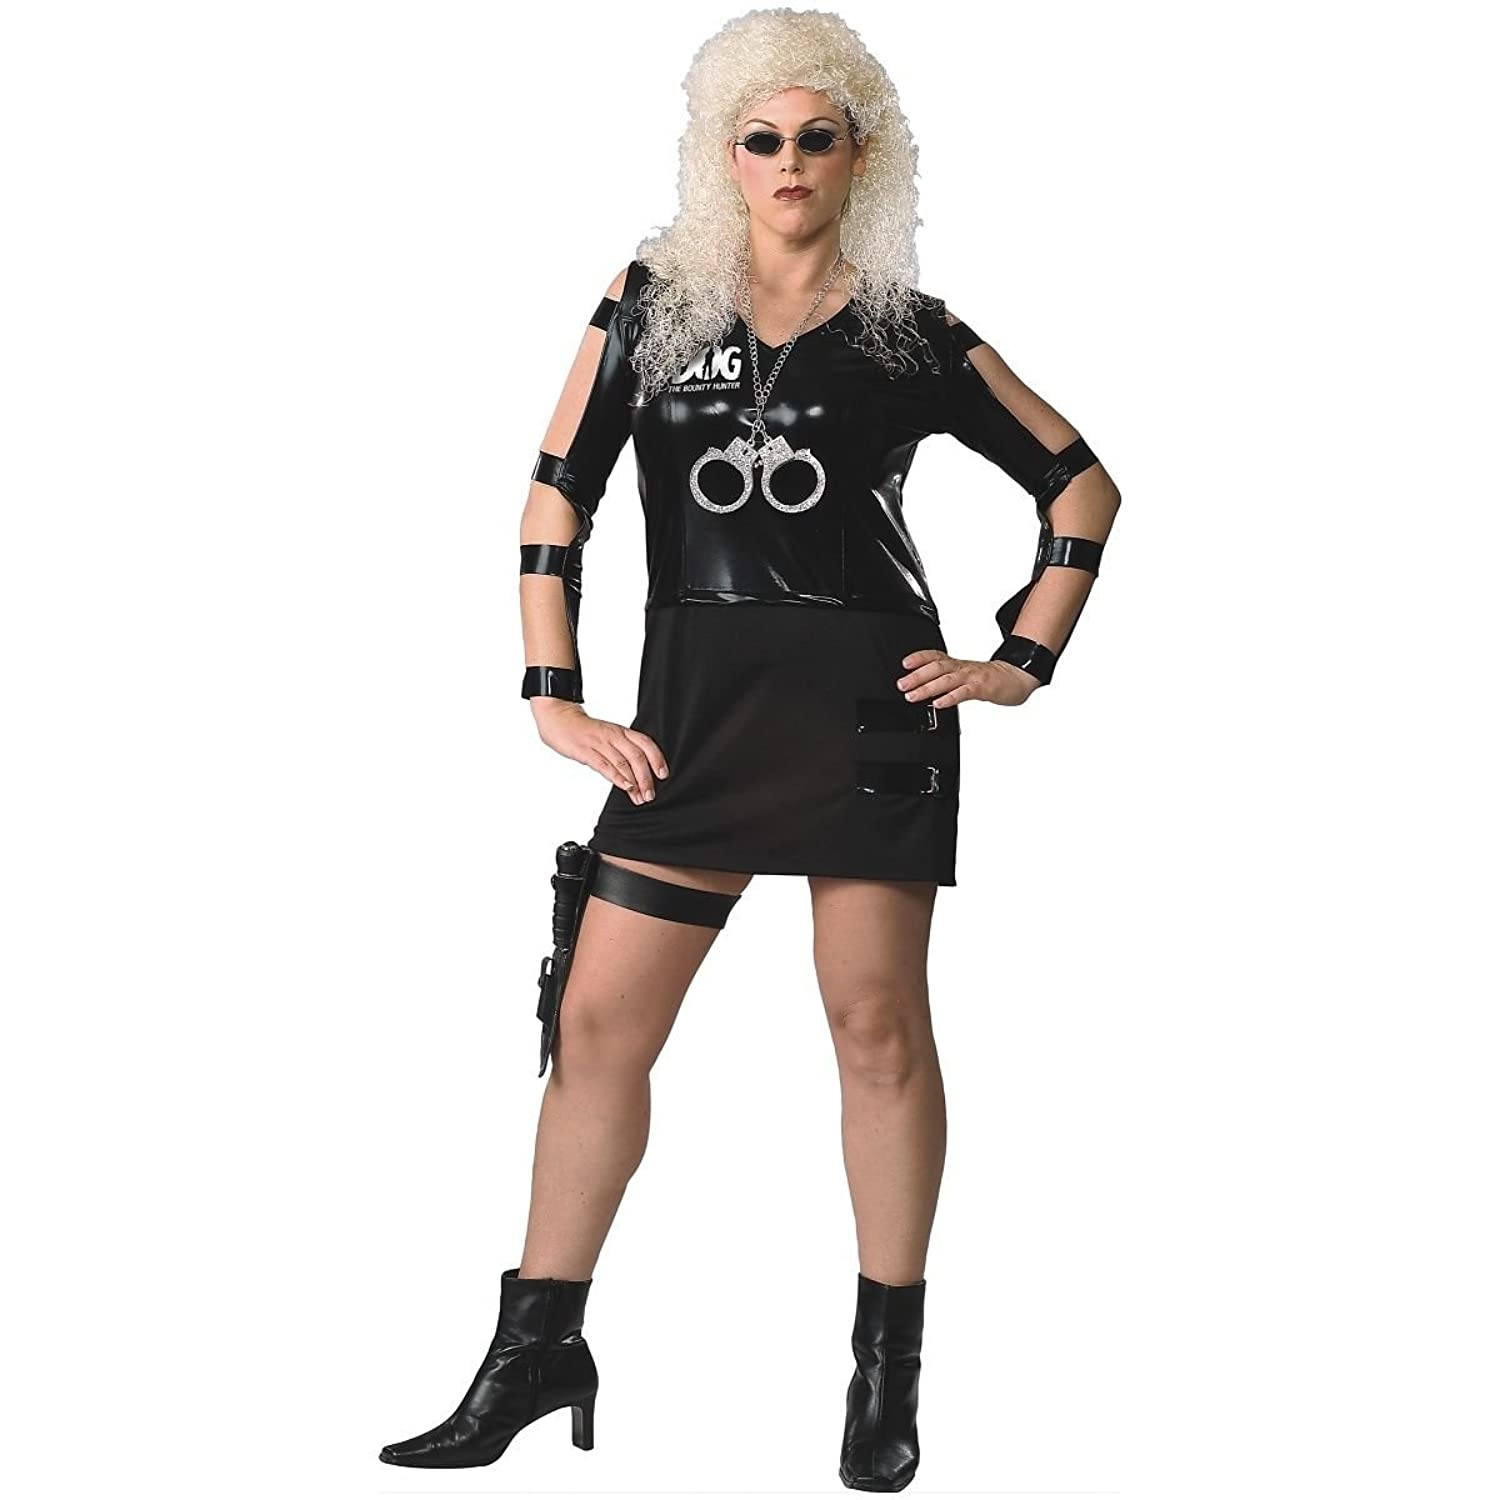 Beth Dog the Bounty Hunter Halloween Costume